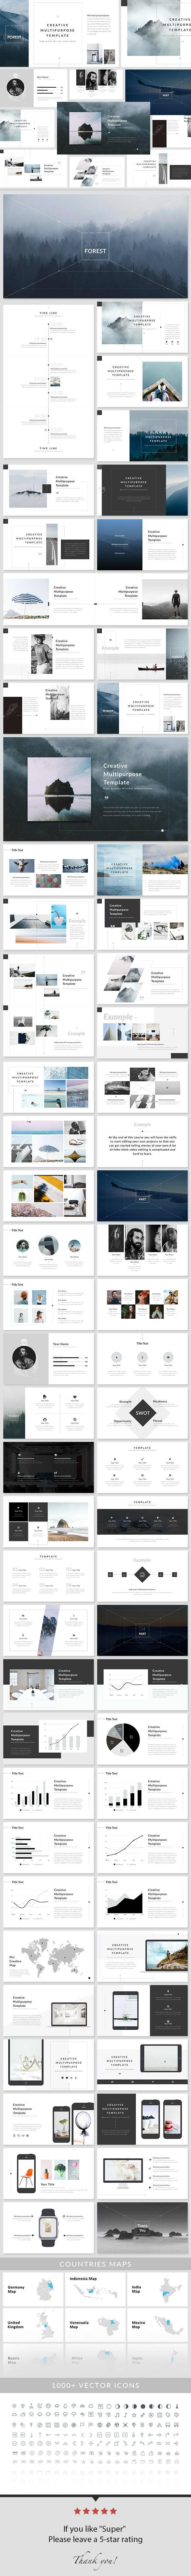 Forest - Keynote Presentation Template - Creative Keynote Templates